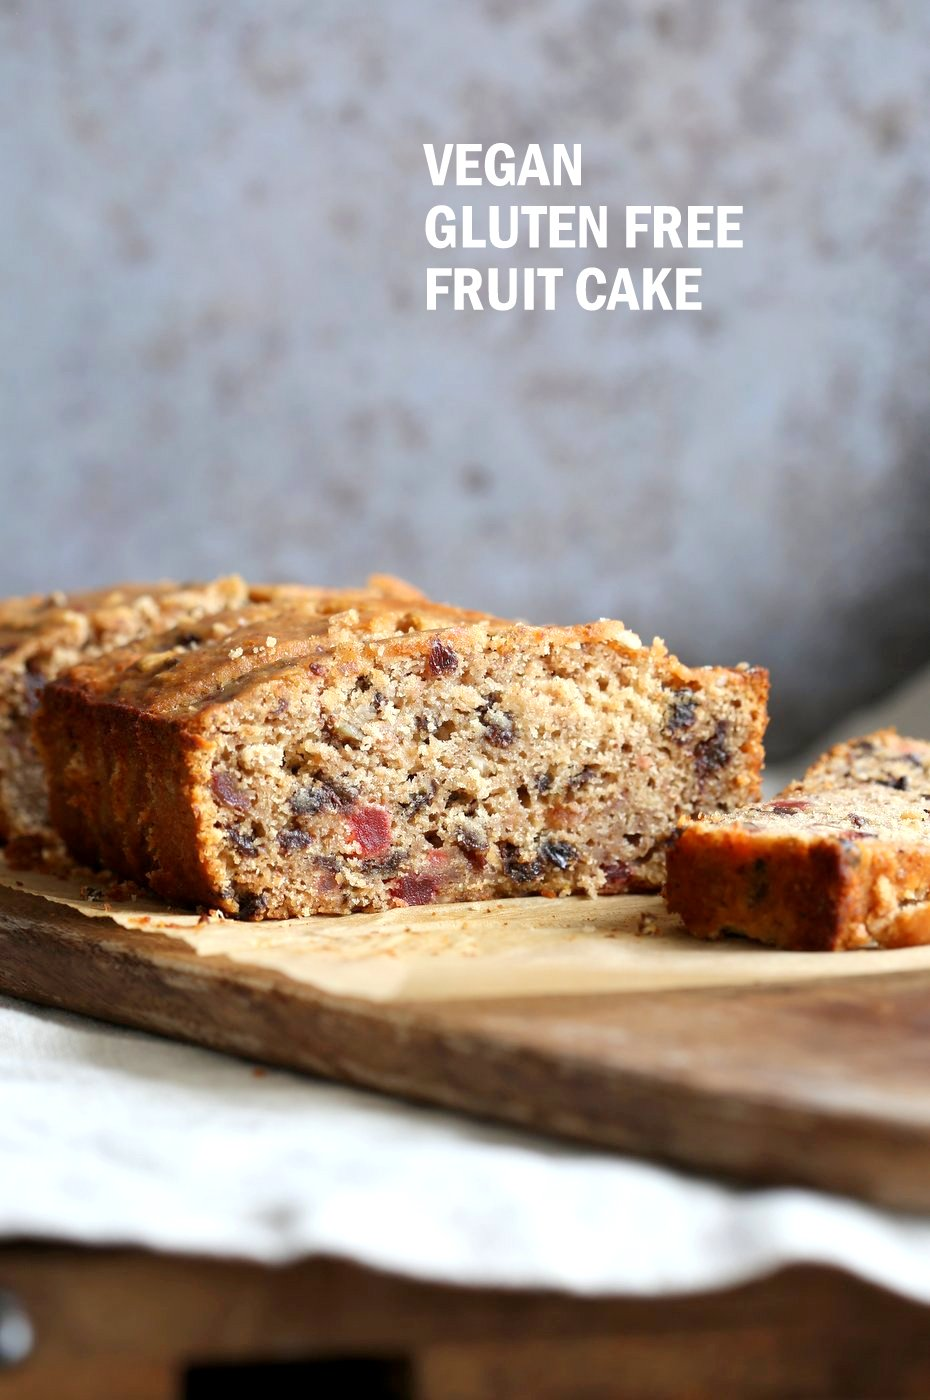 Vegan Gluten free Christmas Cake Fruit Cake full of nuts, dried fruits, candied ginger. Soft, Flavorful and great for gifting. Vegan Soyfree Recipe. #veganricha #vegan #glutenfree | VeganRicha.com